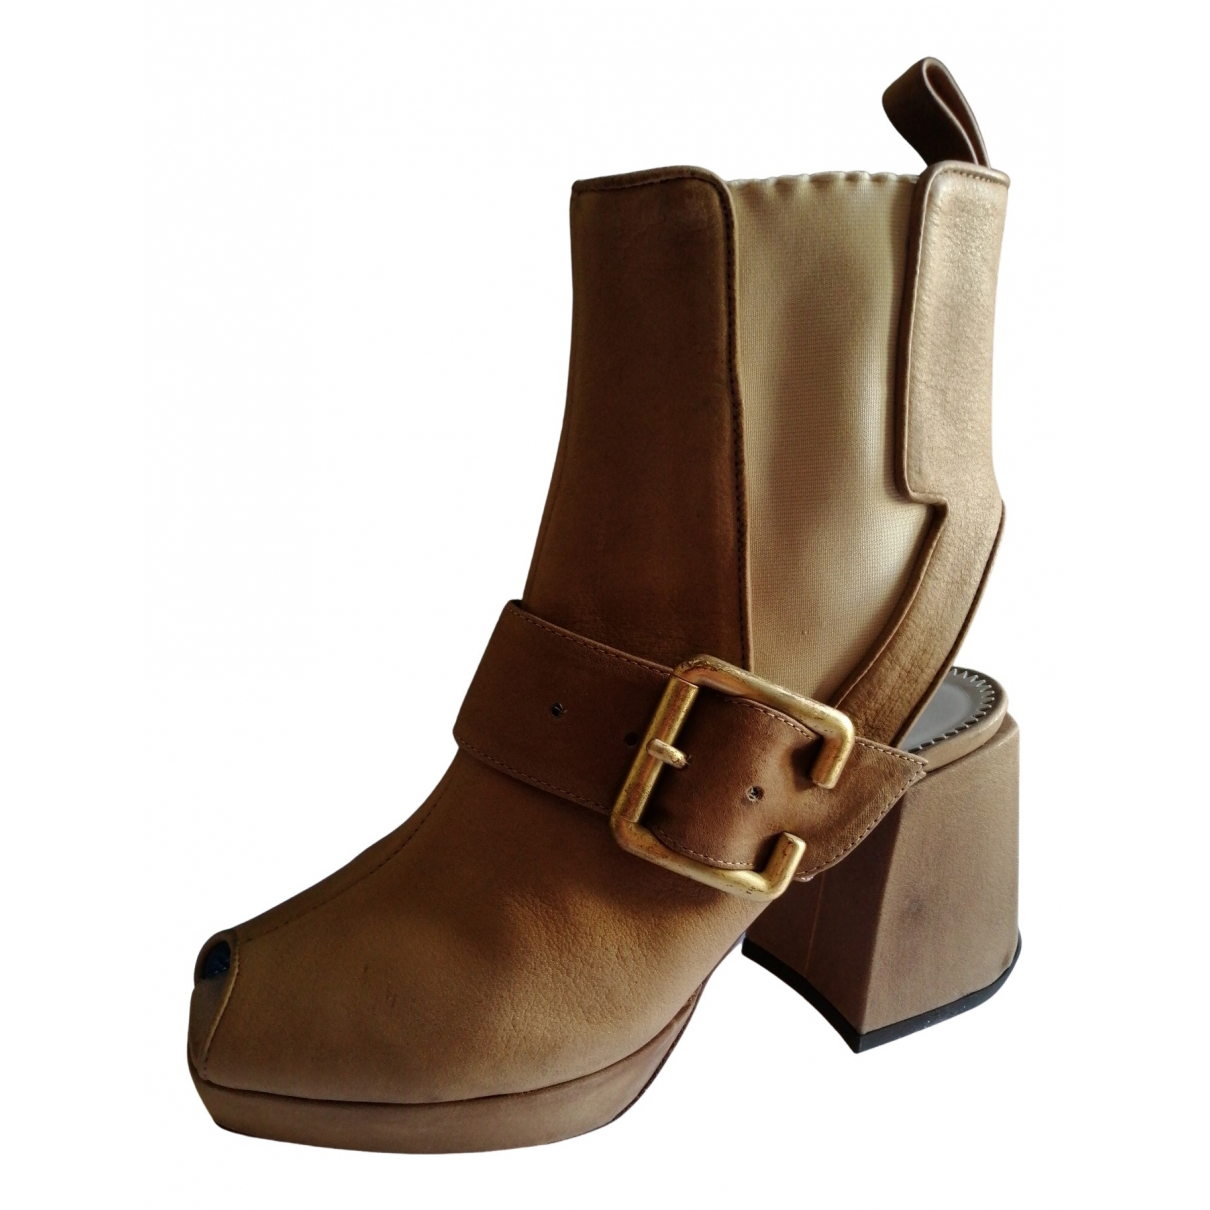 Pollini N Beige Leather Ankle boots for Women 38 IT